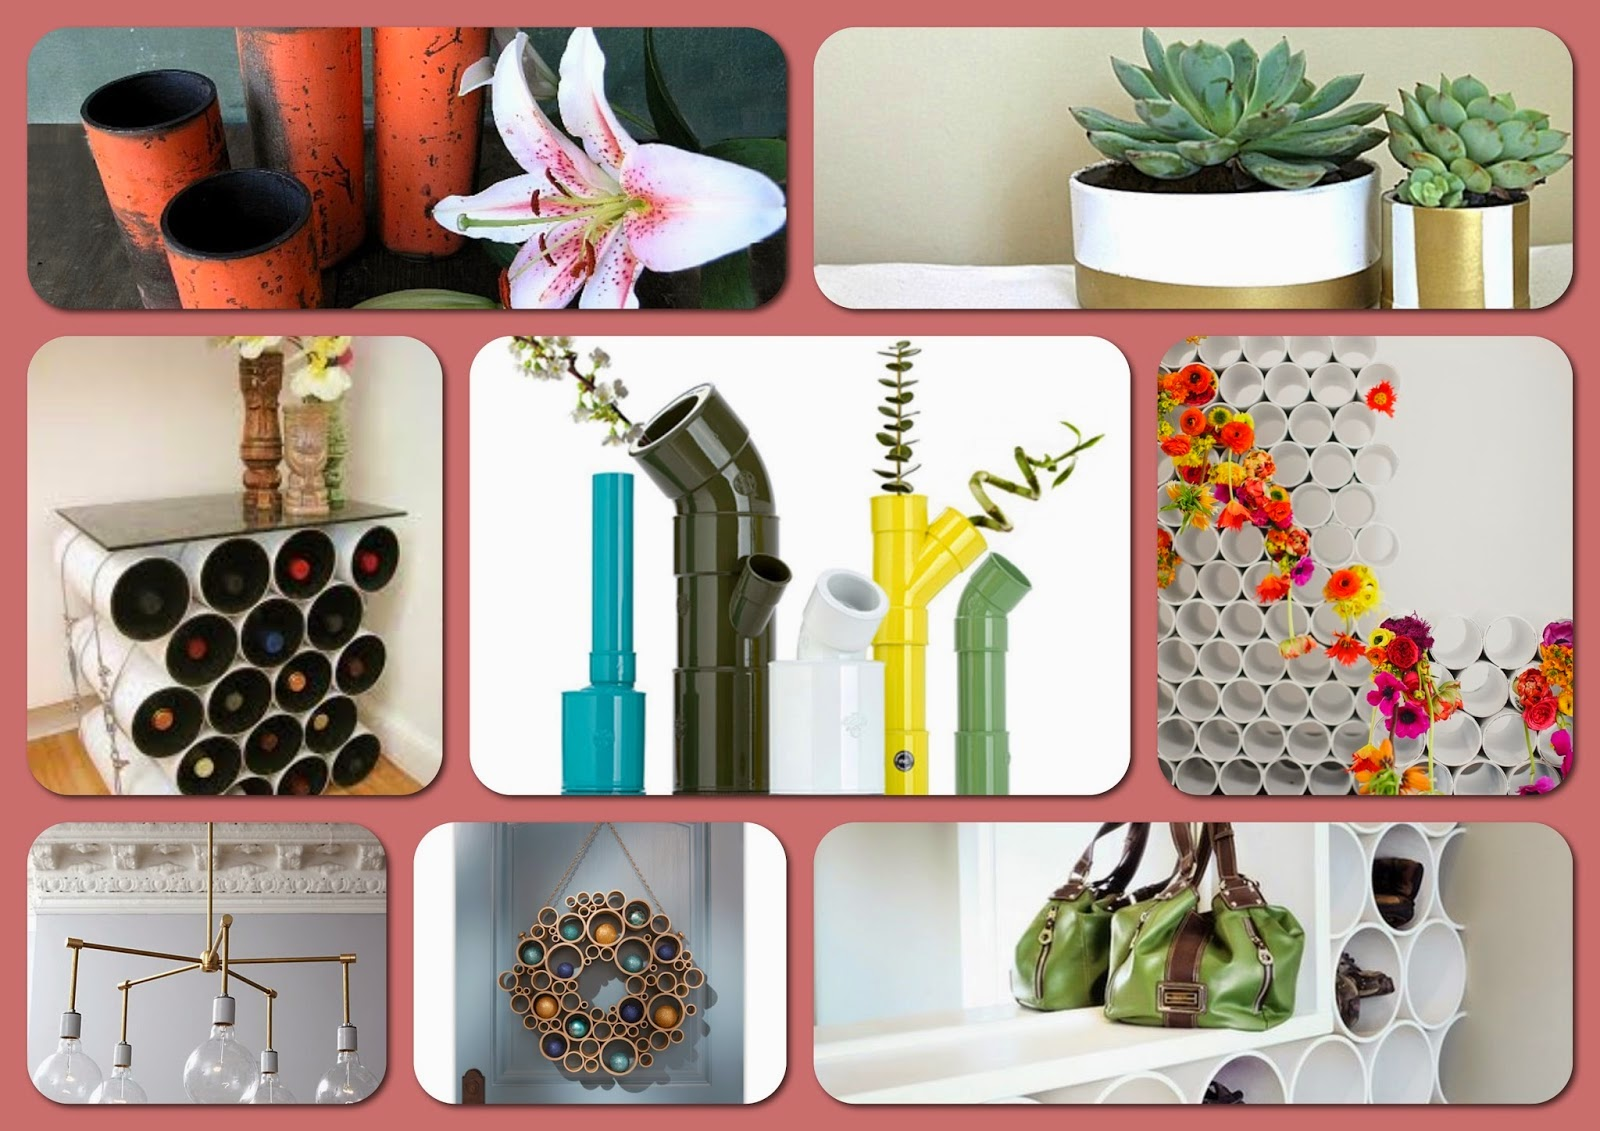 diy pipe projects for your home and garden interior design